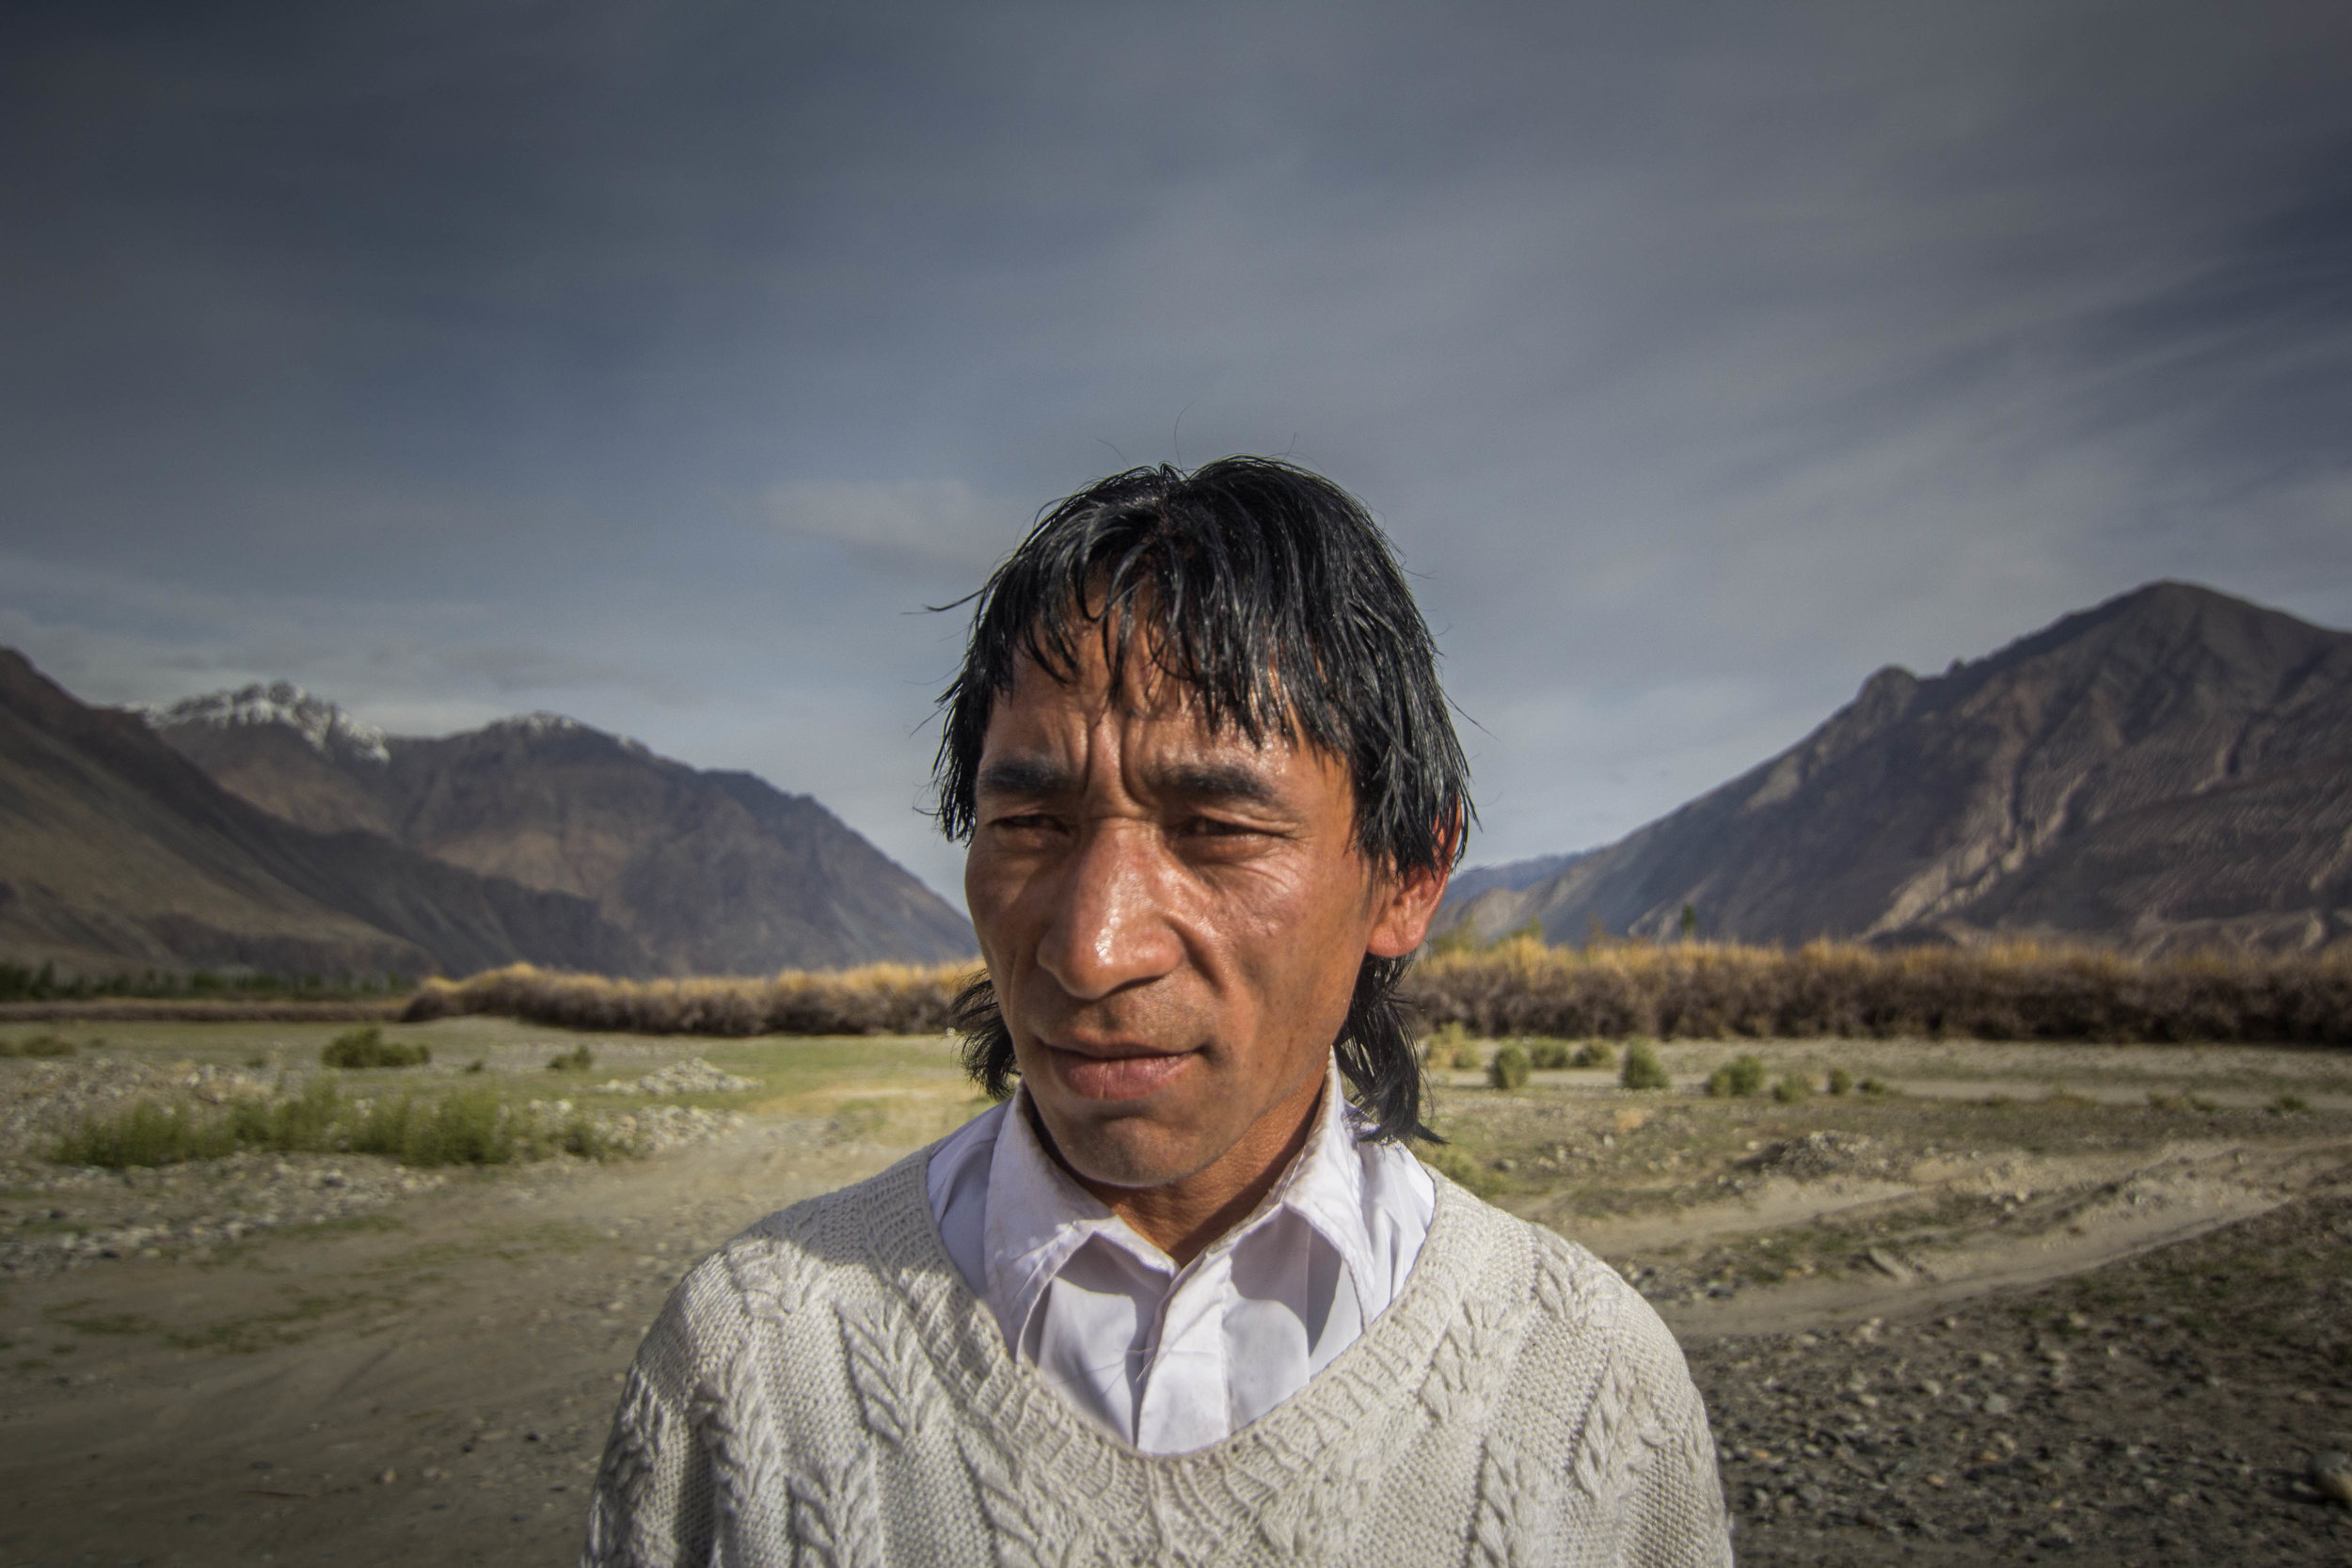 Mohammad Ibrahim has lived in this land since birth. He has walked the desert for decades in service of villagers he has grown to know, delivering mail to the remotest regions in Ladakh. Ibrahim has witnessed the construction of roads, and the change in the lifestyle that it has brought about.